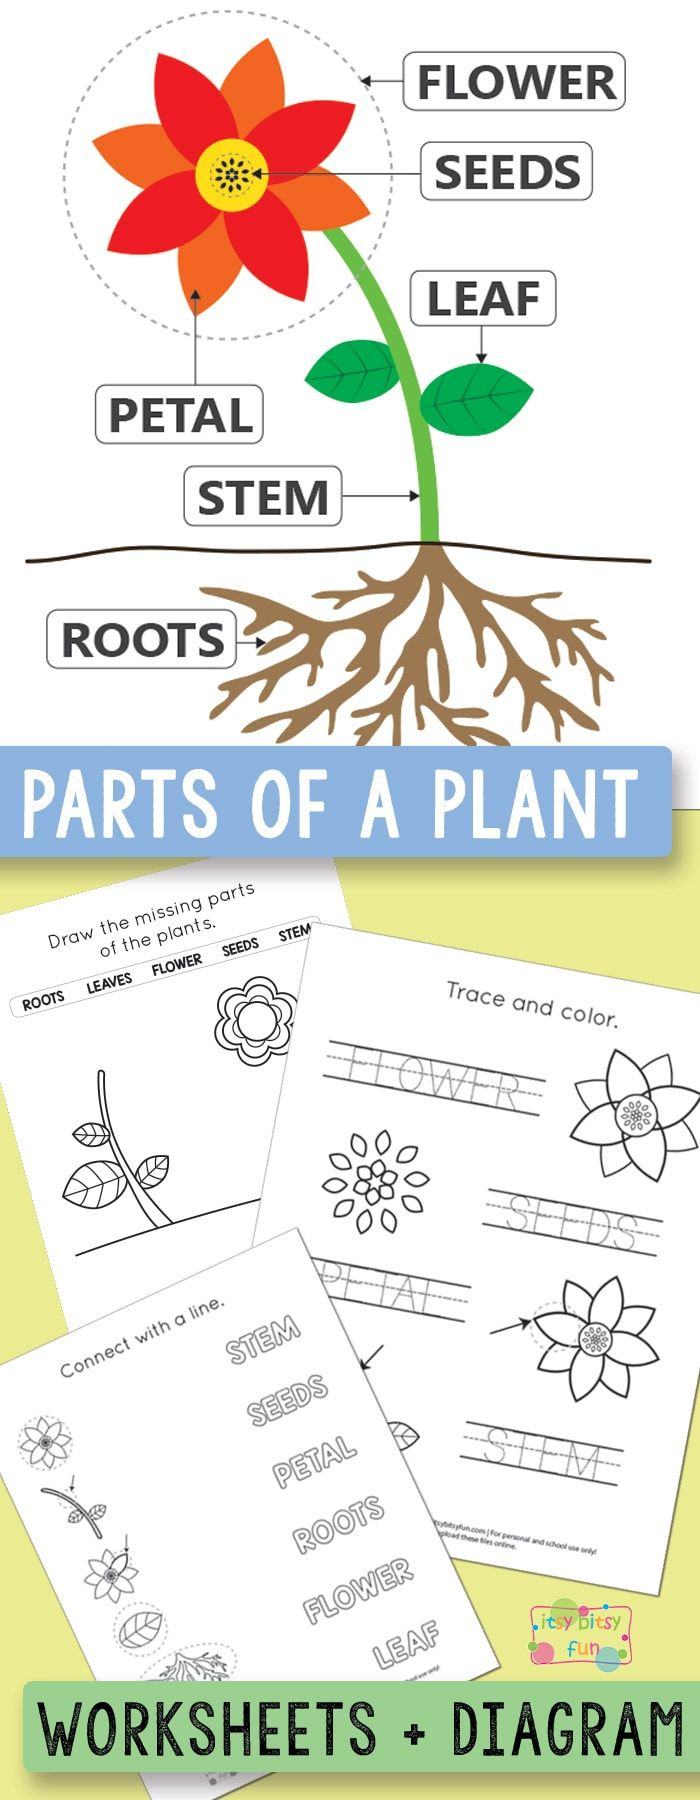 Free Printable Parts of a Plant Worksheets - itsybitsyfun.com   Plants  worksheets [ 1800 x 700 Pixel ]